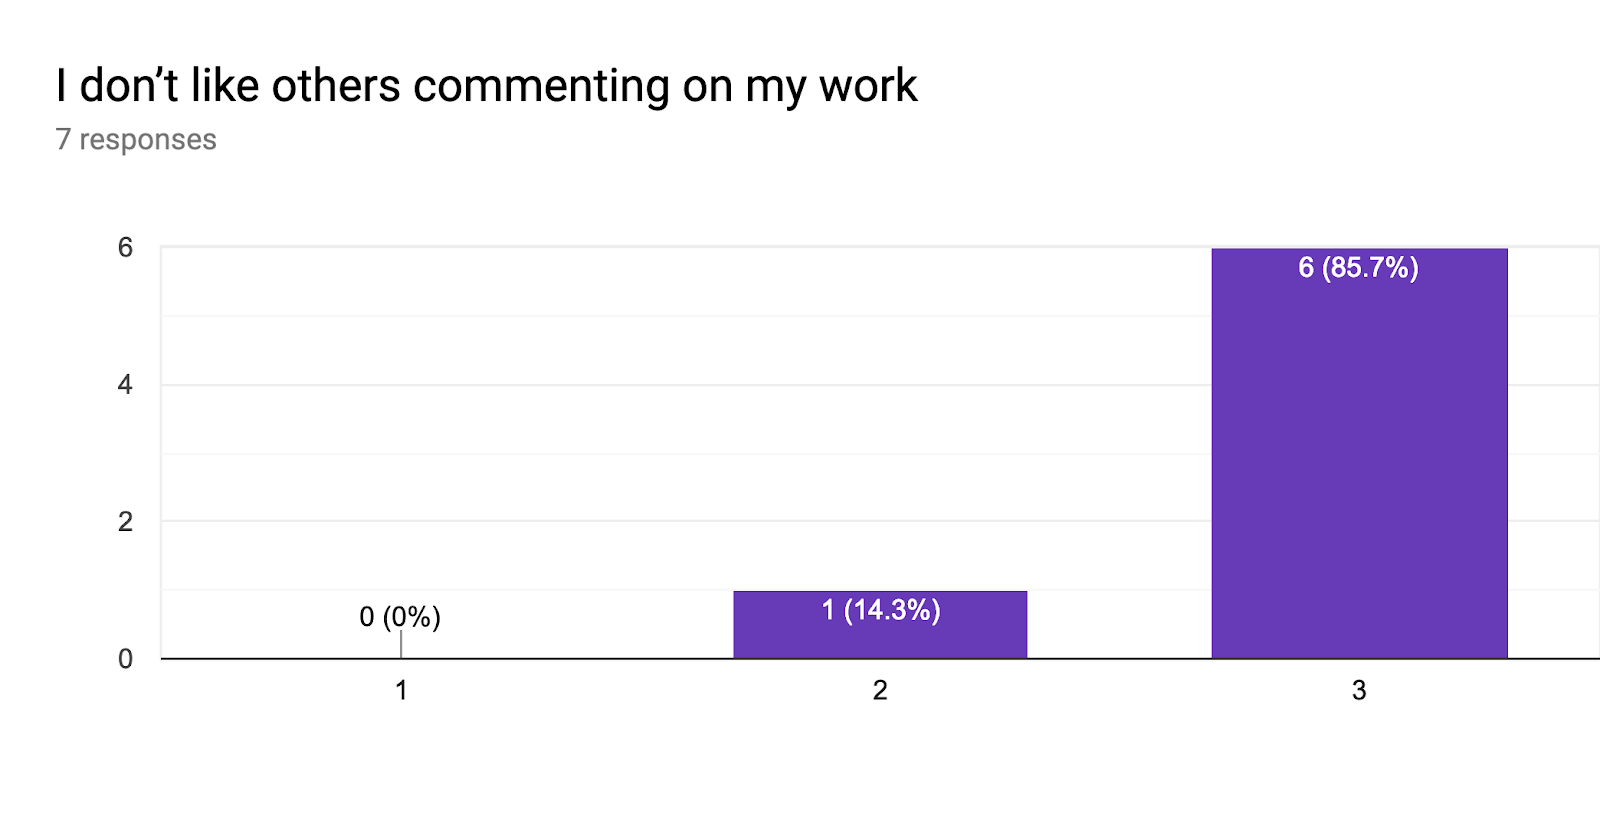 Forms response chart. Question title: I don't like others commenting on my work. Number of responses: 7 responses.